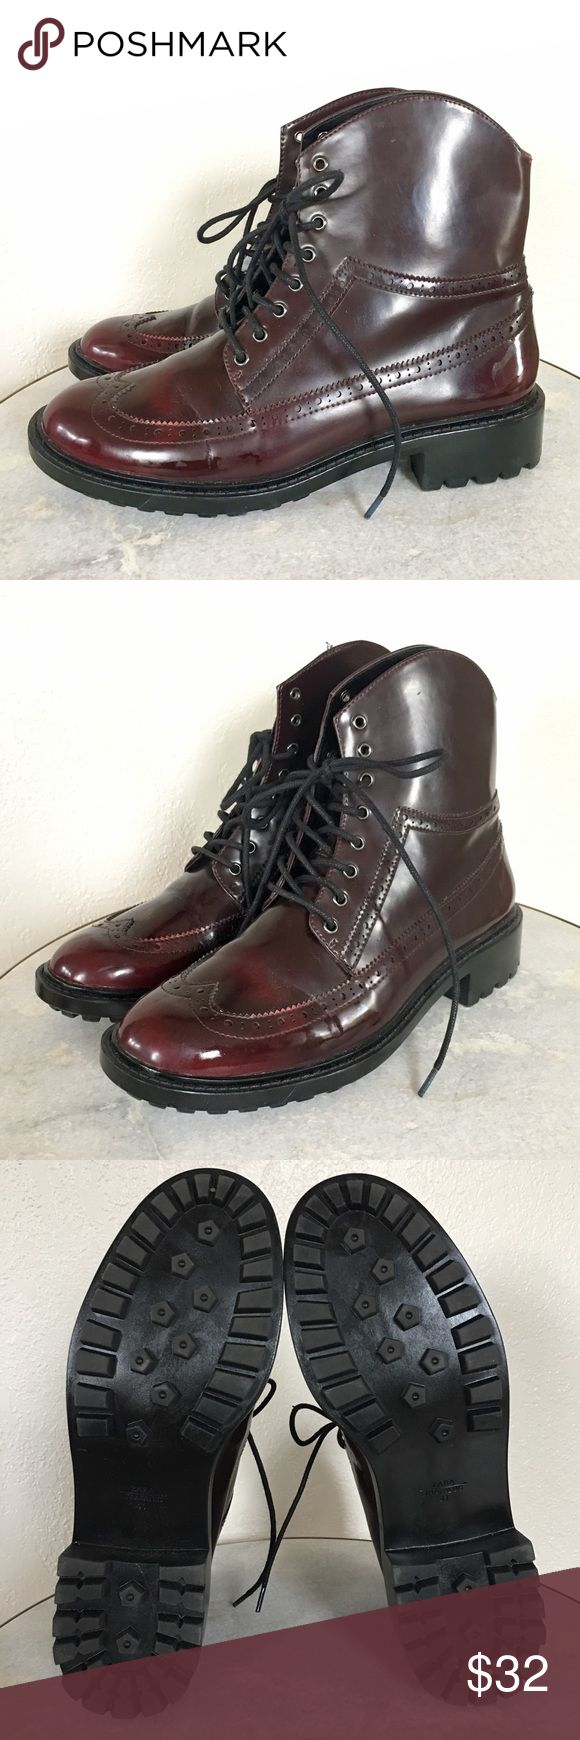 Zara Brogue Booties These burgundy boots combine the masculine style of brogues and combat boots in a patent burgundy leather with a soft ankle high cut. Near perfect condition - have been worn once! Great for rain or snow. Runs small - fits more like a 9 or 9.5. Zara Shoes Combat & Moto Boots